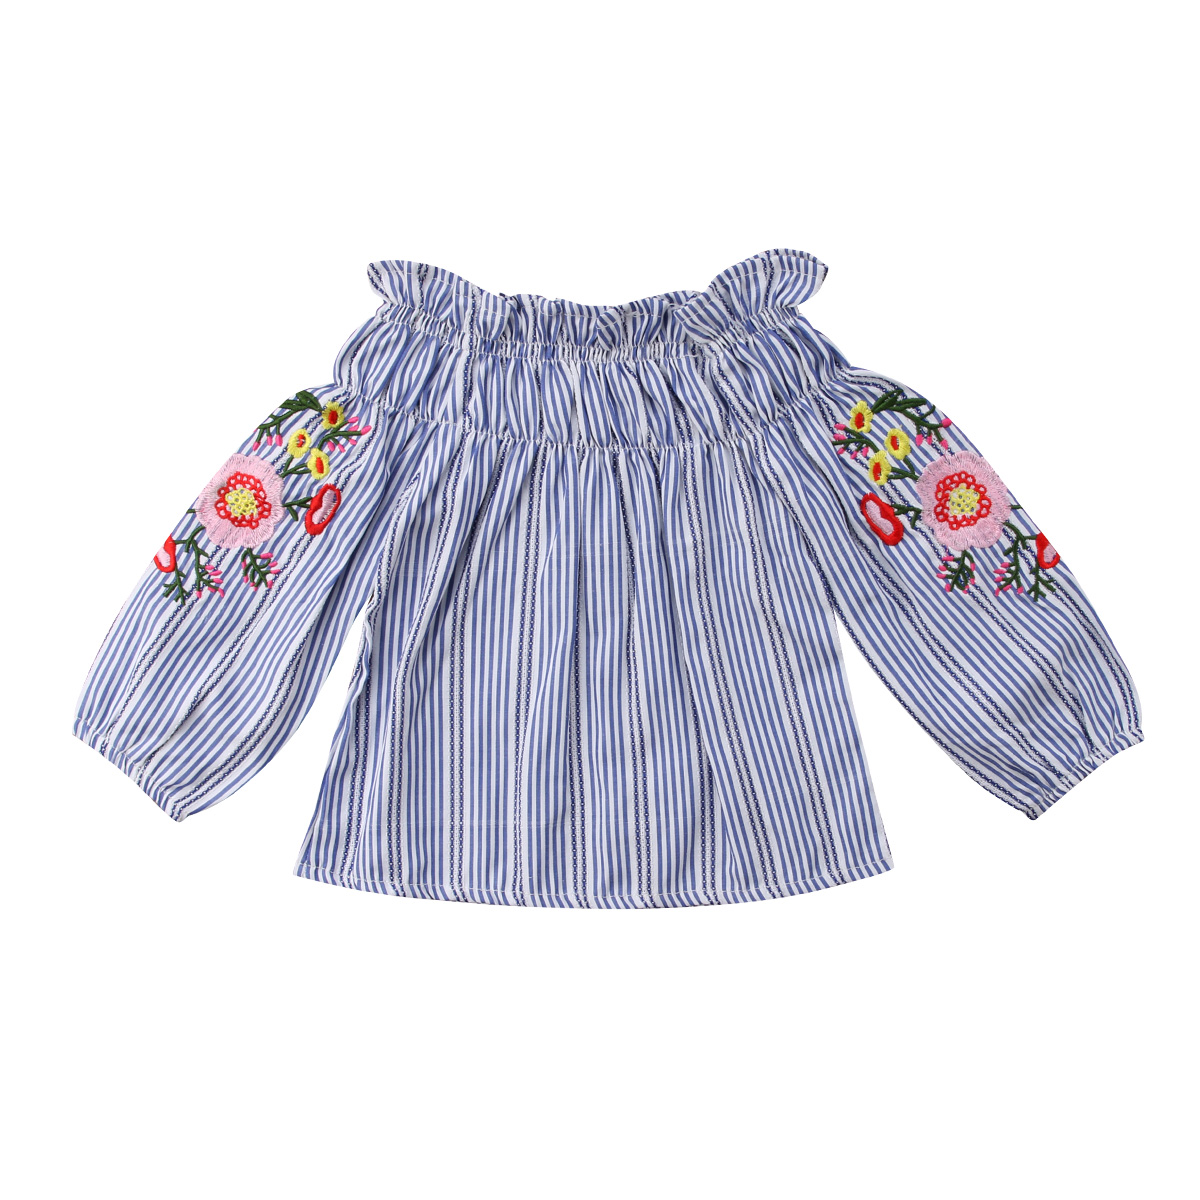 Toddler Baby Kid Girl Clothing Stripe Floral Embroider Off-Shoulder T-shirt Casual Summer Long Sleeve Tops Clothes Girls 1-7T цена